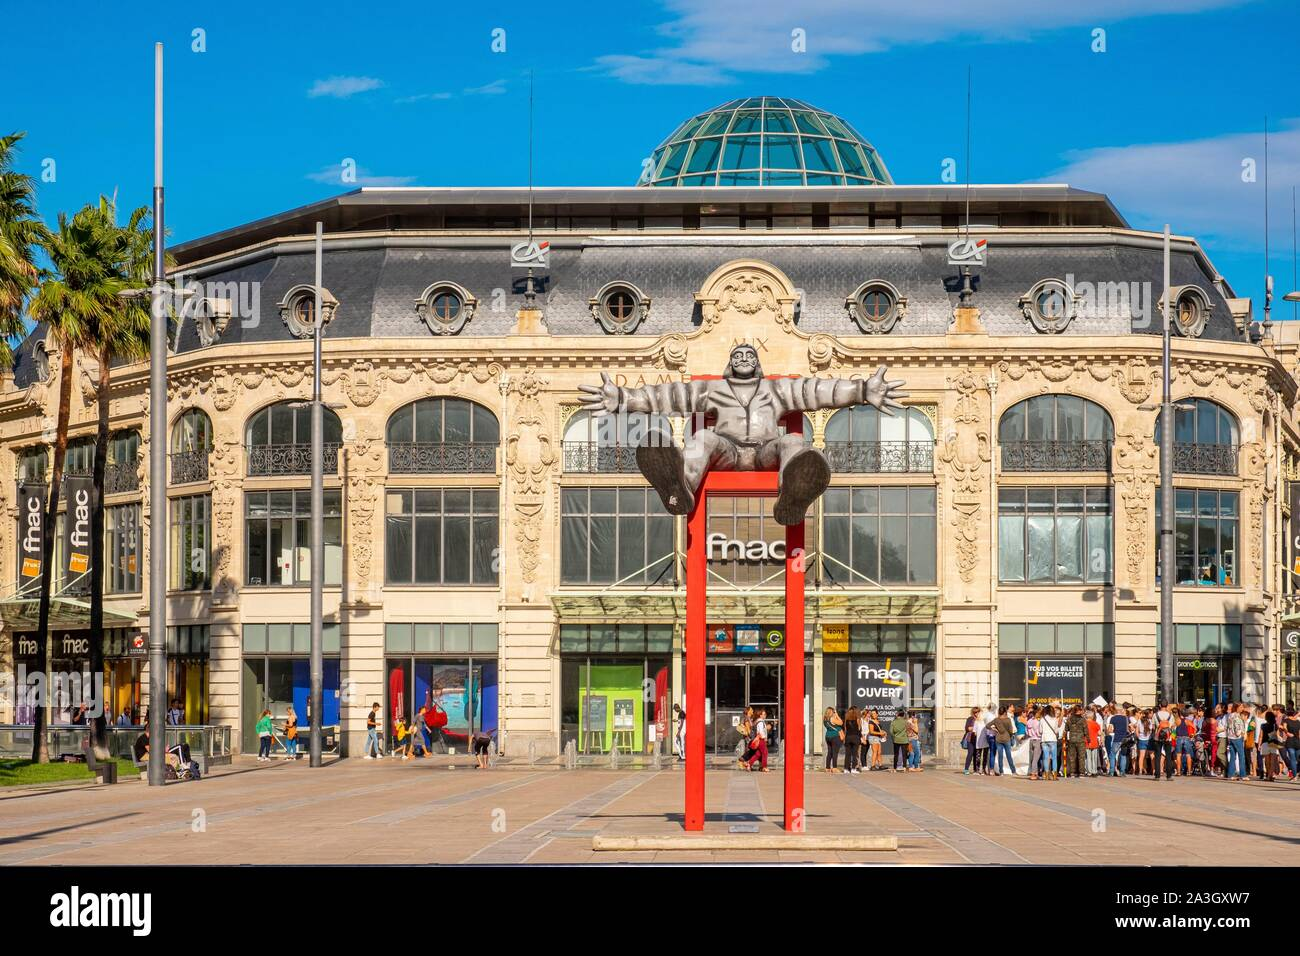 Top Libros Fnac Fnac Stock Photos Fnac Stock Images Page 2 Alamy